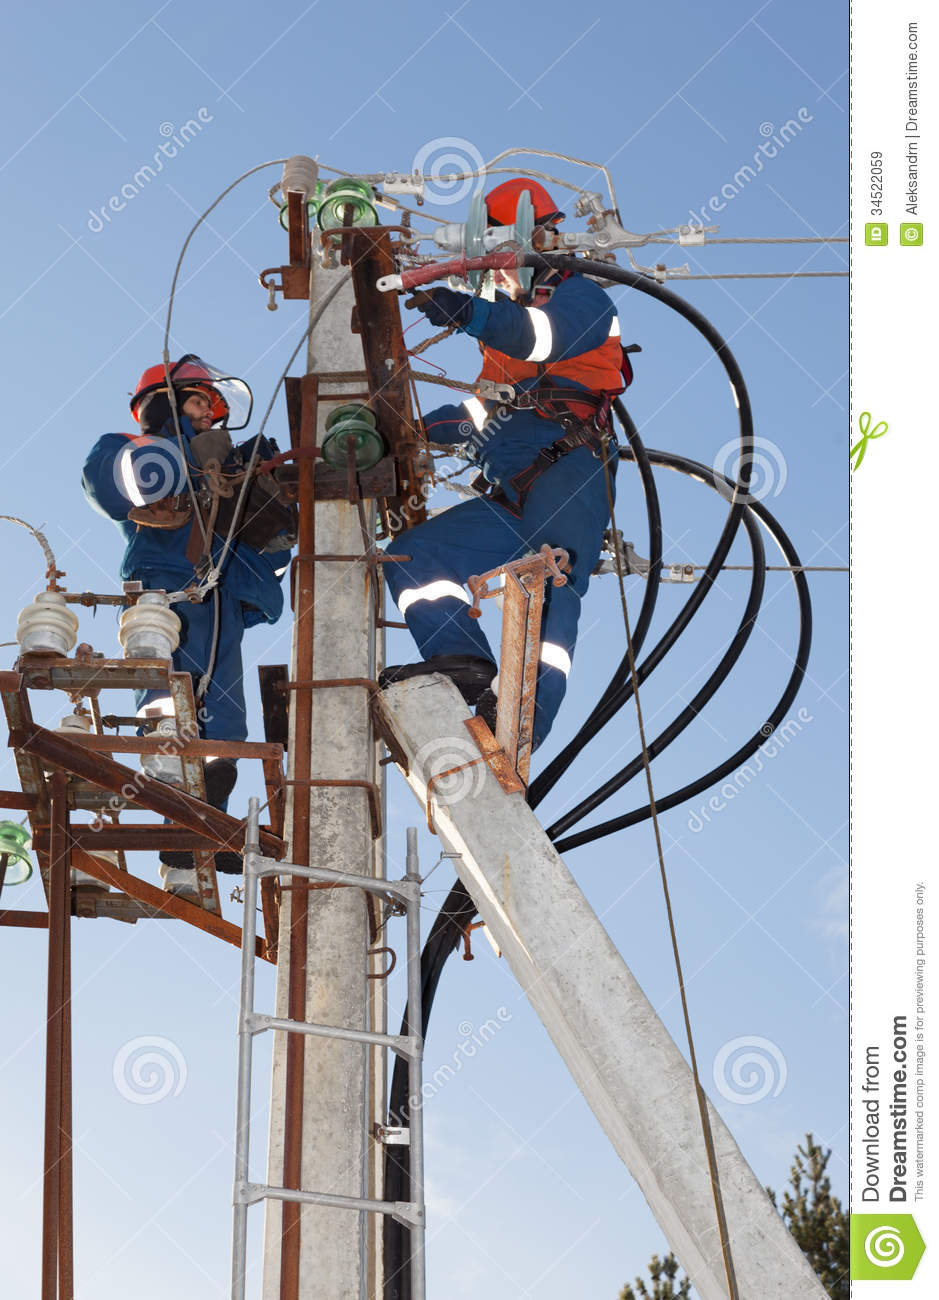 Electricians Troubleshoot On Power Lines Royalty Free